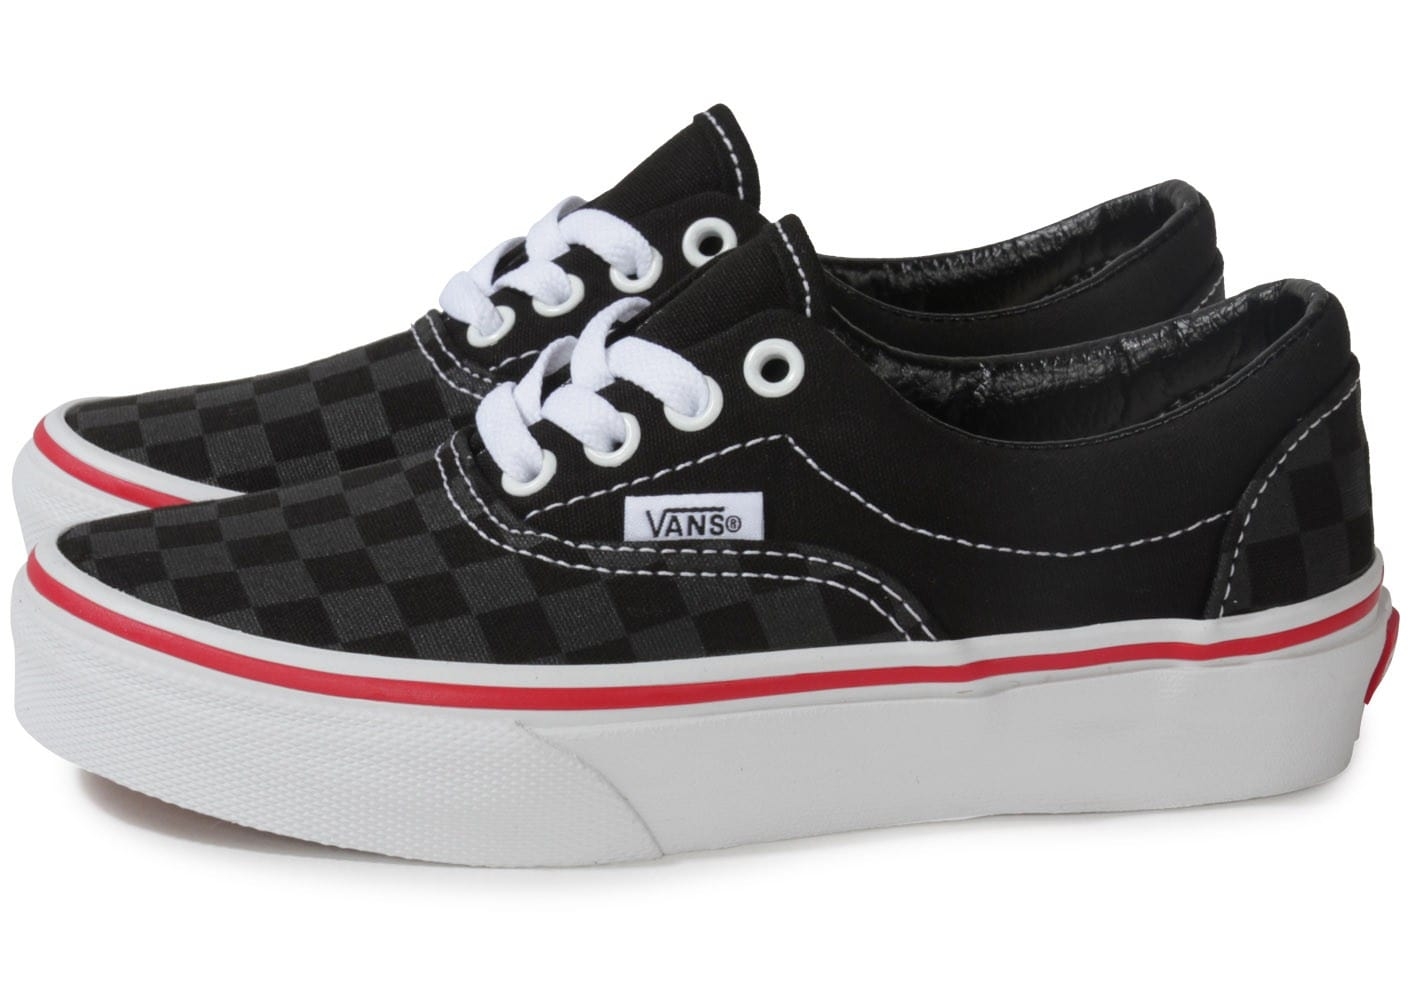 vans era enfant damier noir chaussures chaussures chausport. Black Bedroom Furniture Sets. Home Design Ideas